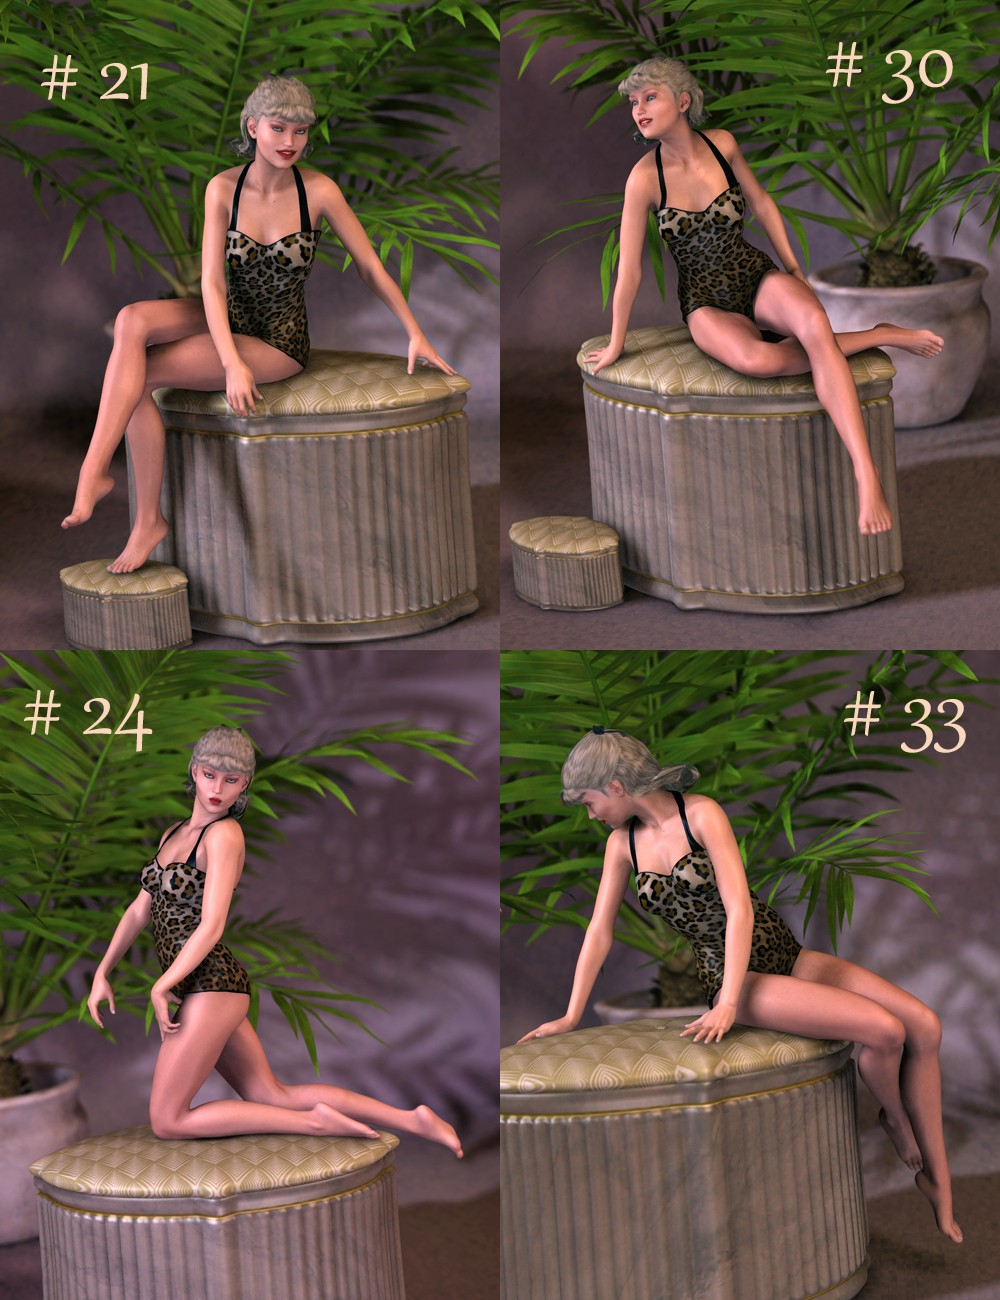 Classic Pin-Up Sitting Poses for Victoria 6